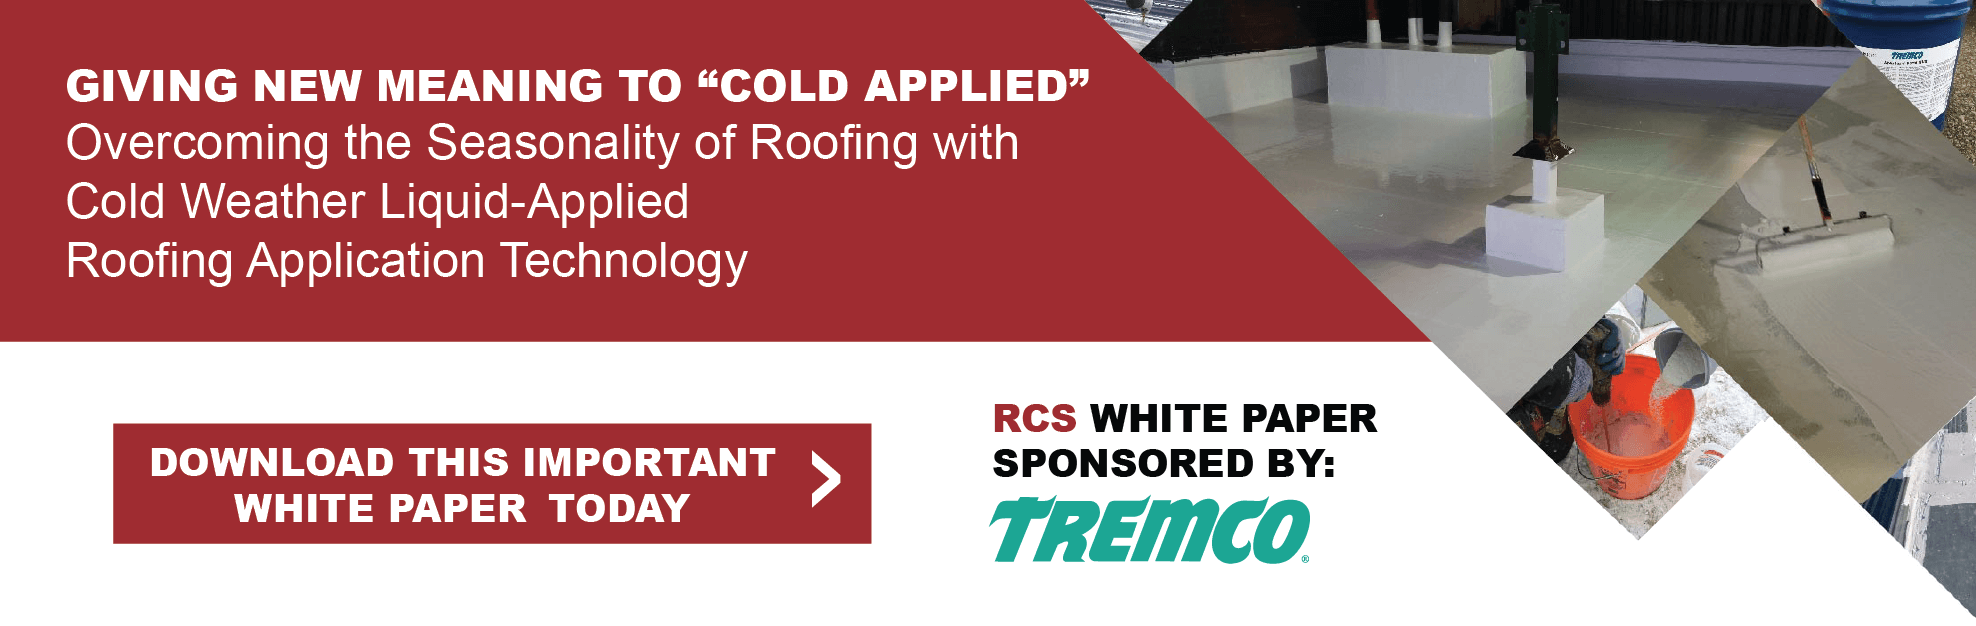 Tremco -  White Paper liquid applied coatings